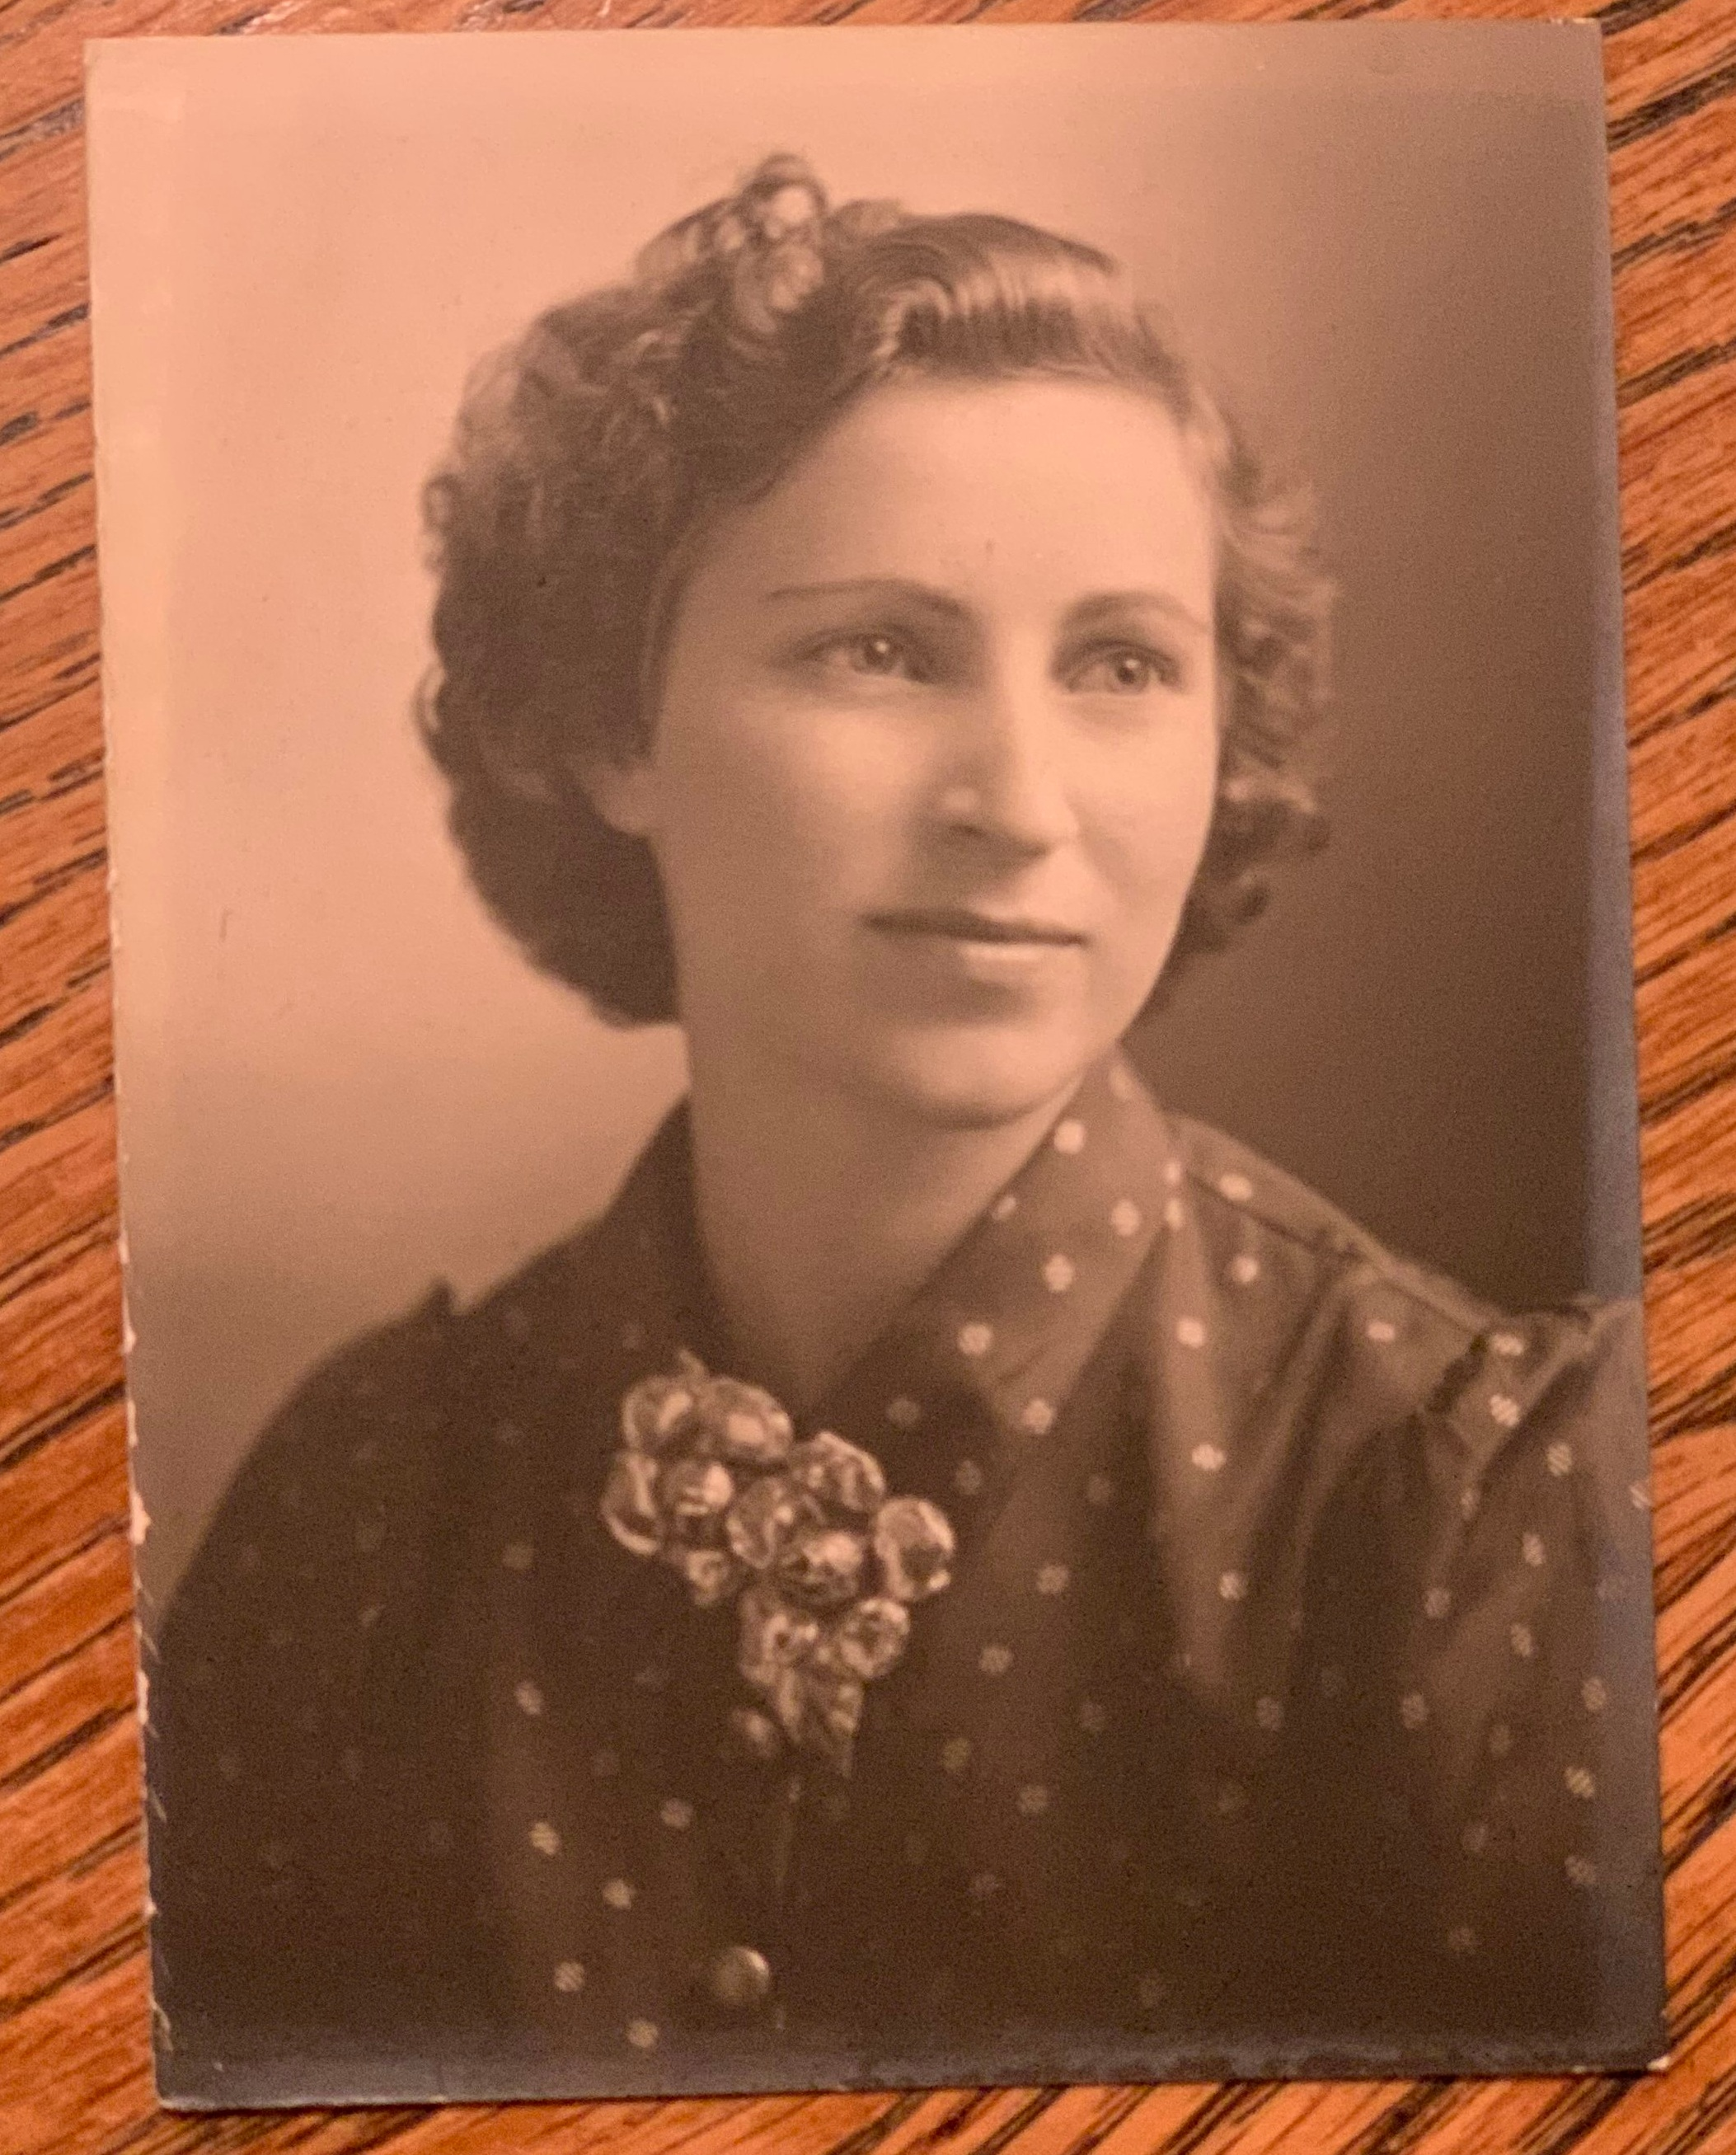 A photo of my grandma, Doris, taken after her high school graduation